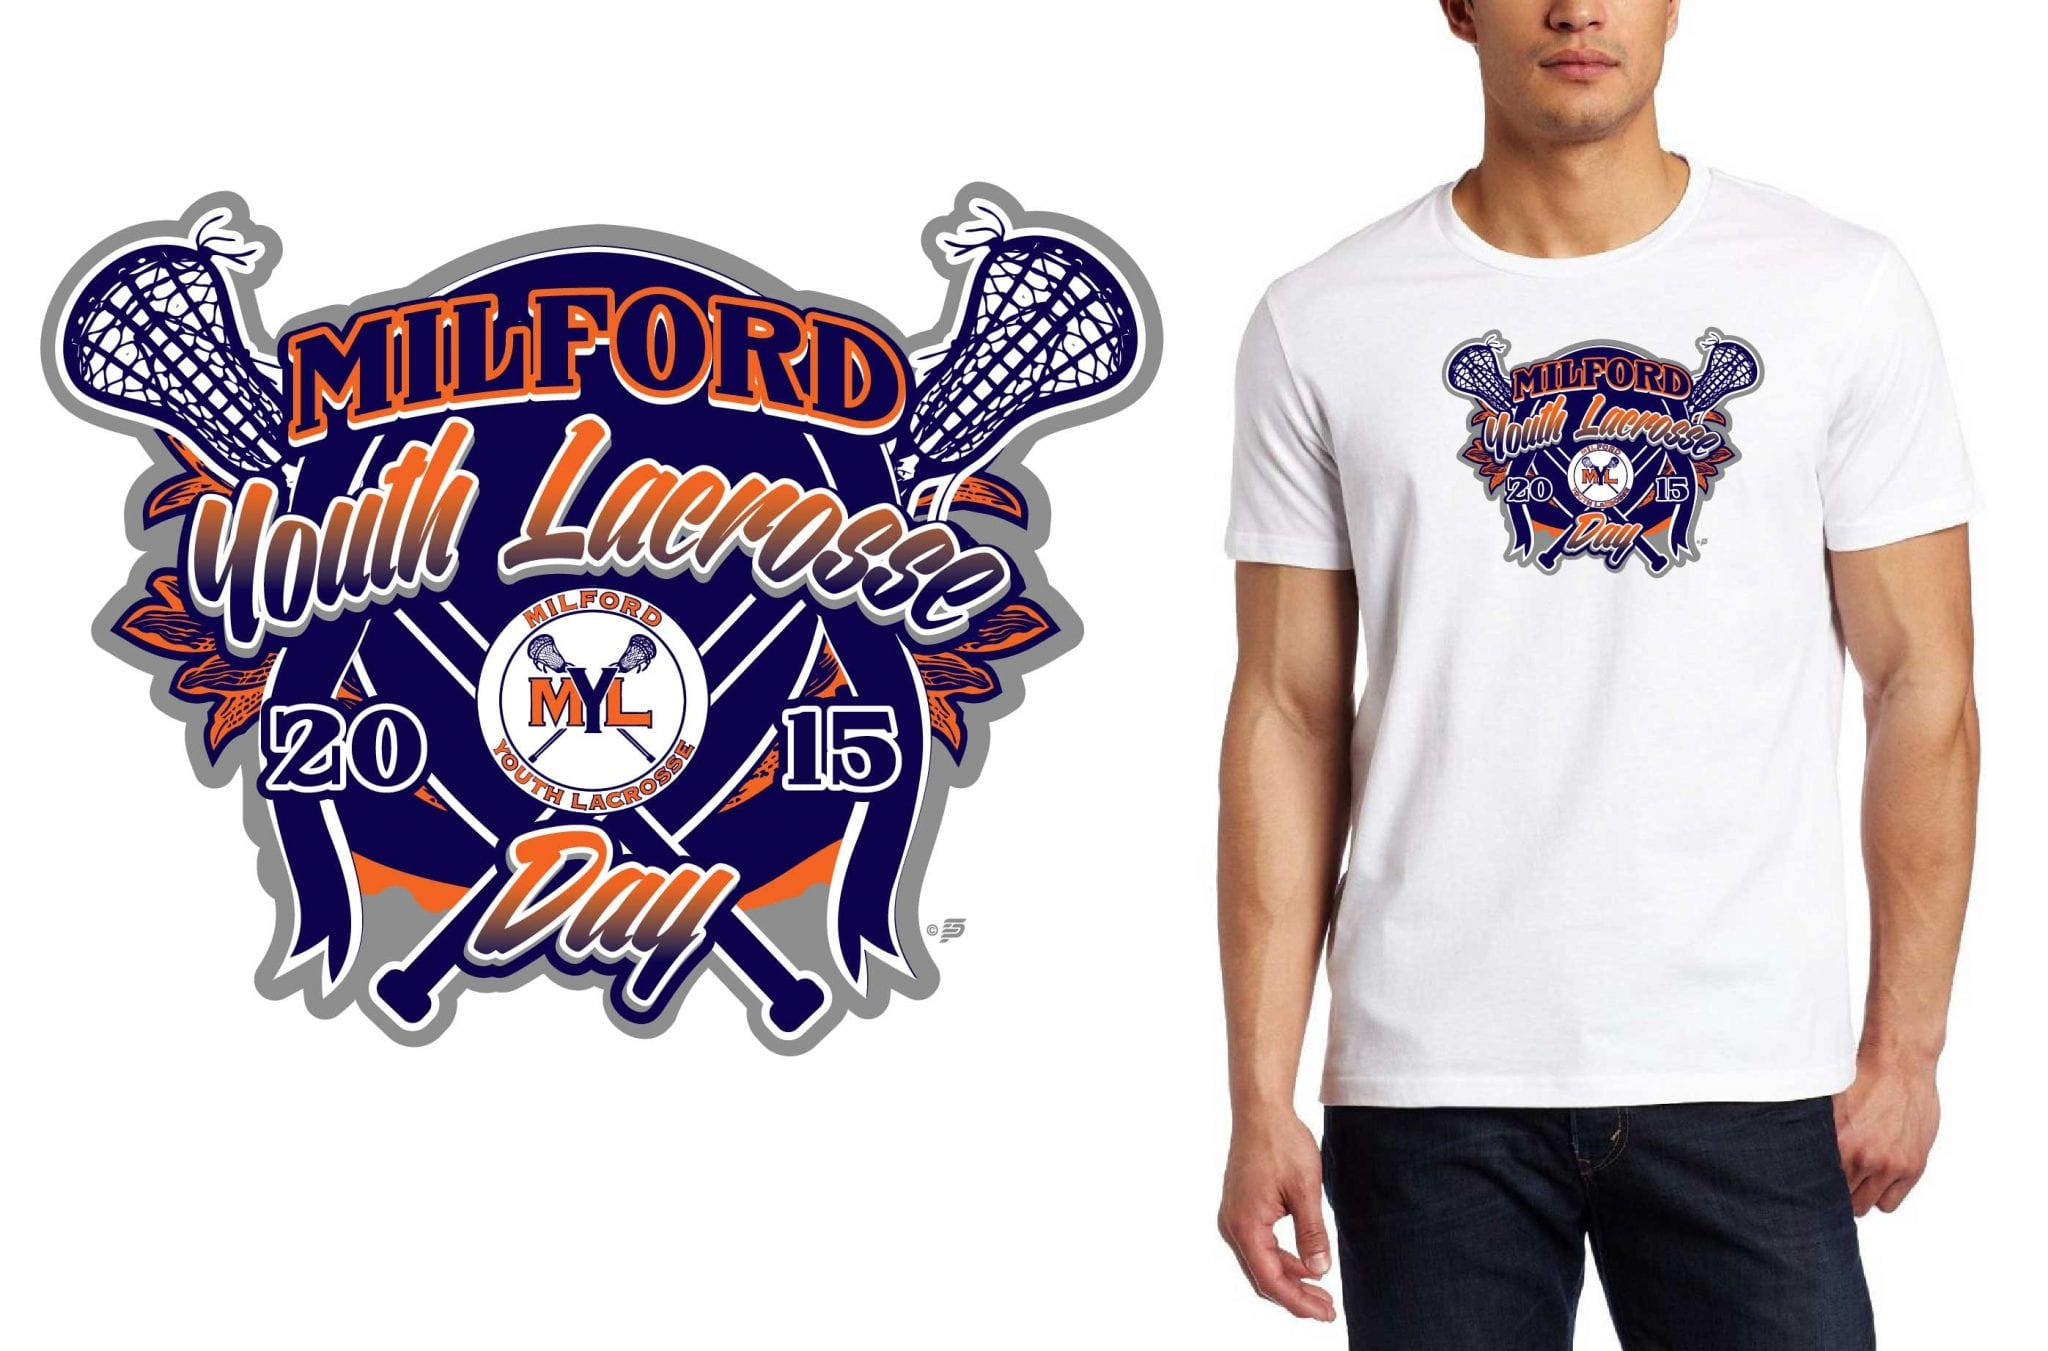 2015 Milford Youth Lacrosse Tournament PRINT READY